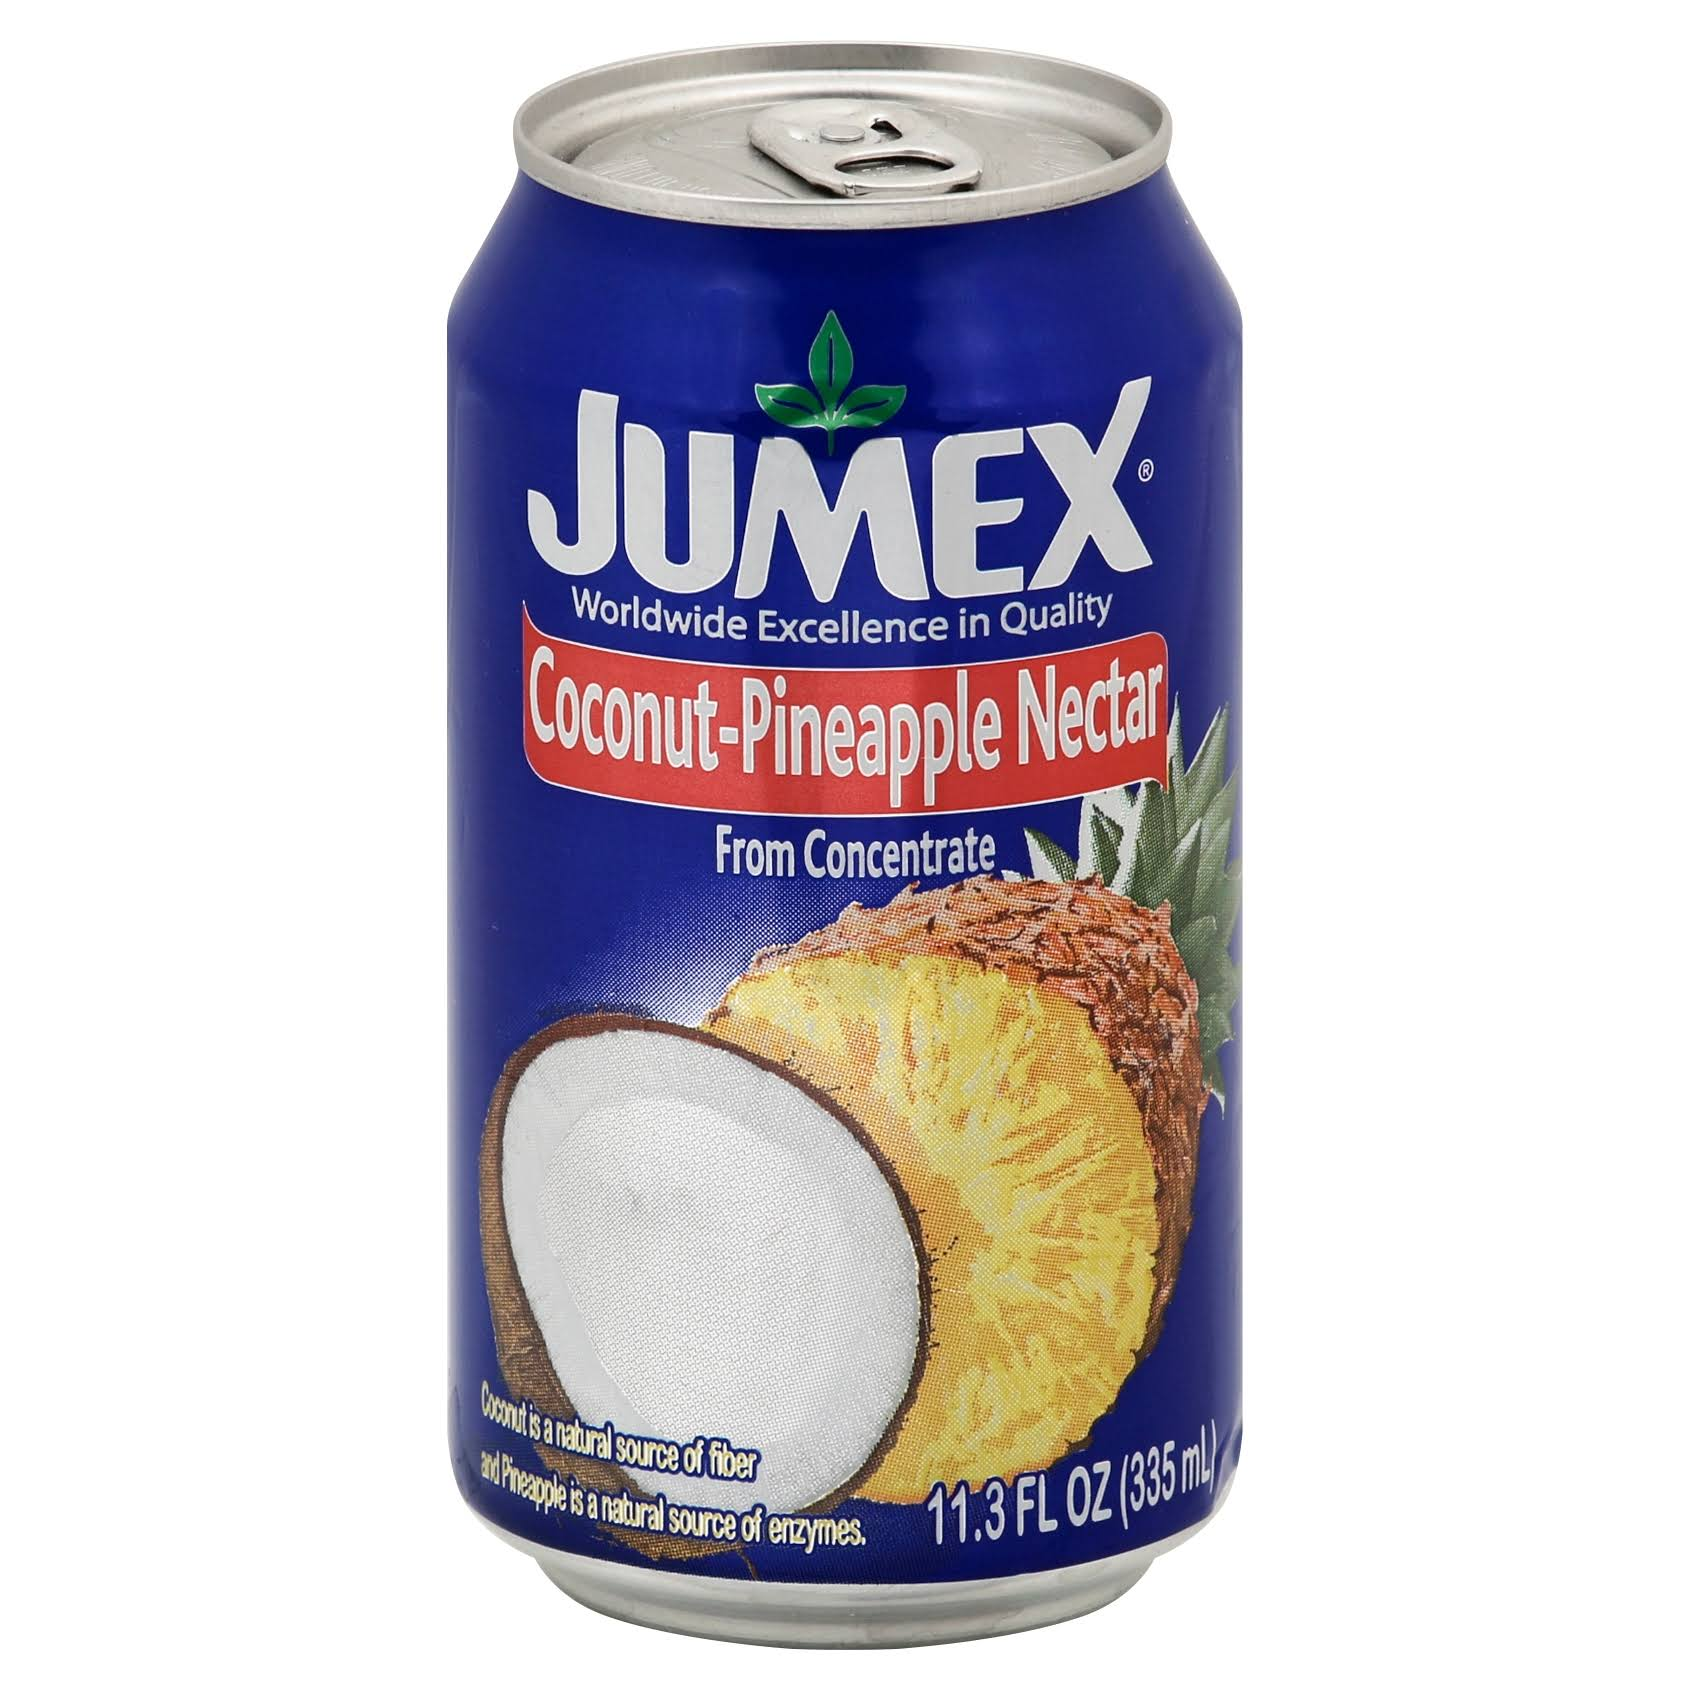 Jumex Nectar - Coconut-Pineapple